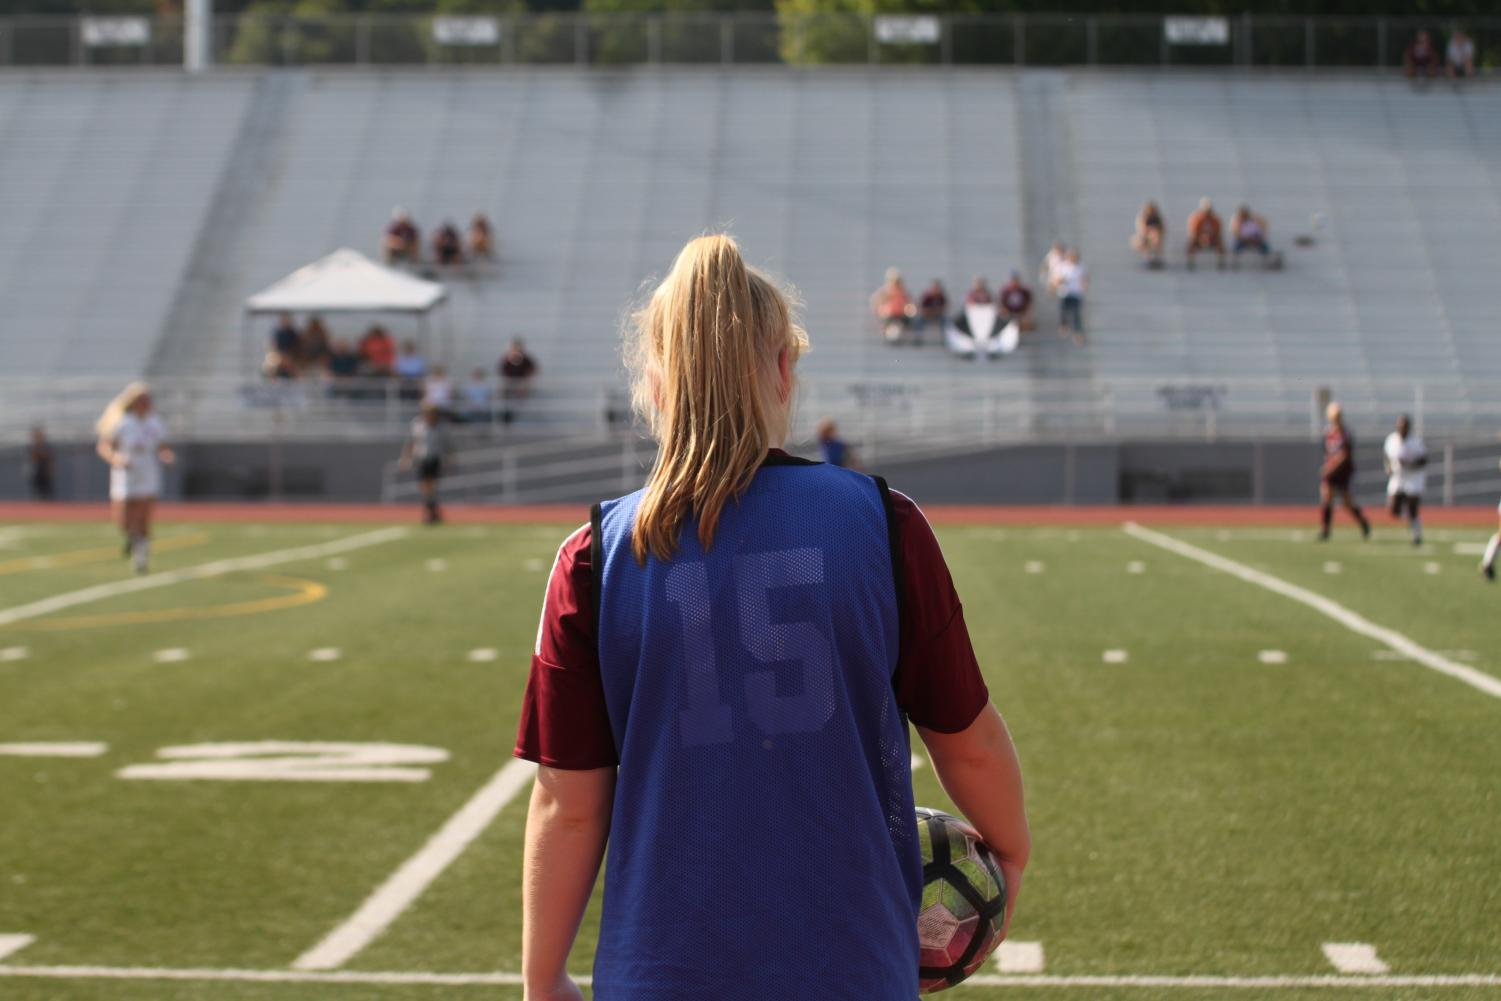 The game begins. On Saturday, Sept. 21, sophomore Rebecca Dull watches closely as her team fights for the ball against Williamsport. The game started at 3 p.m., at Baker Mansion.